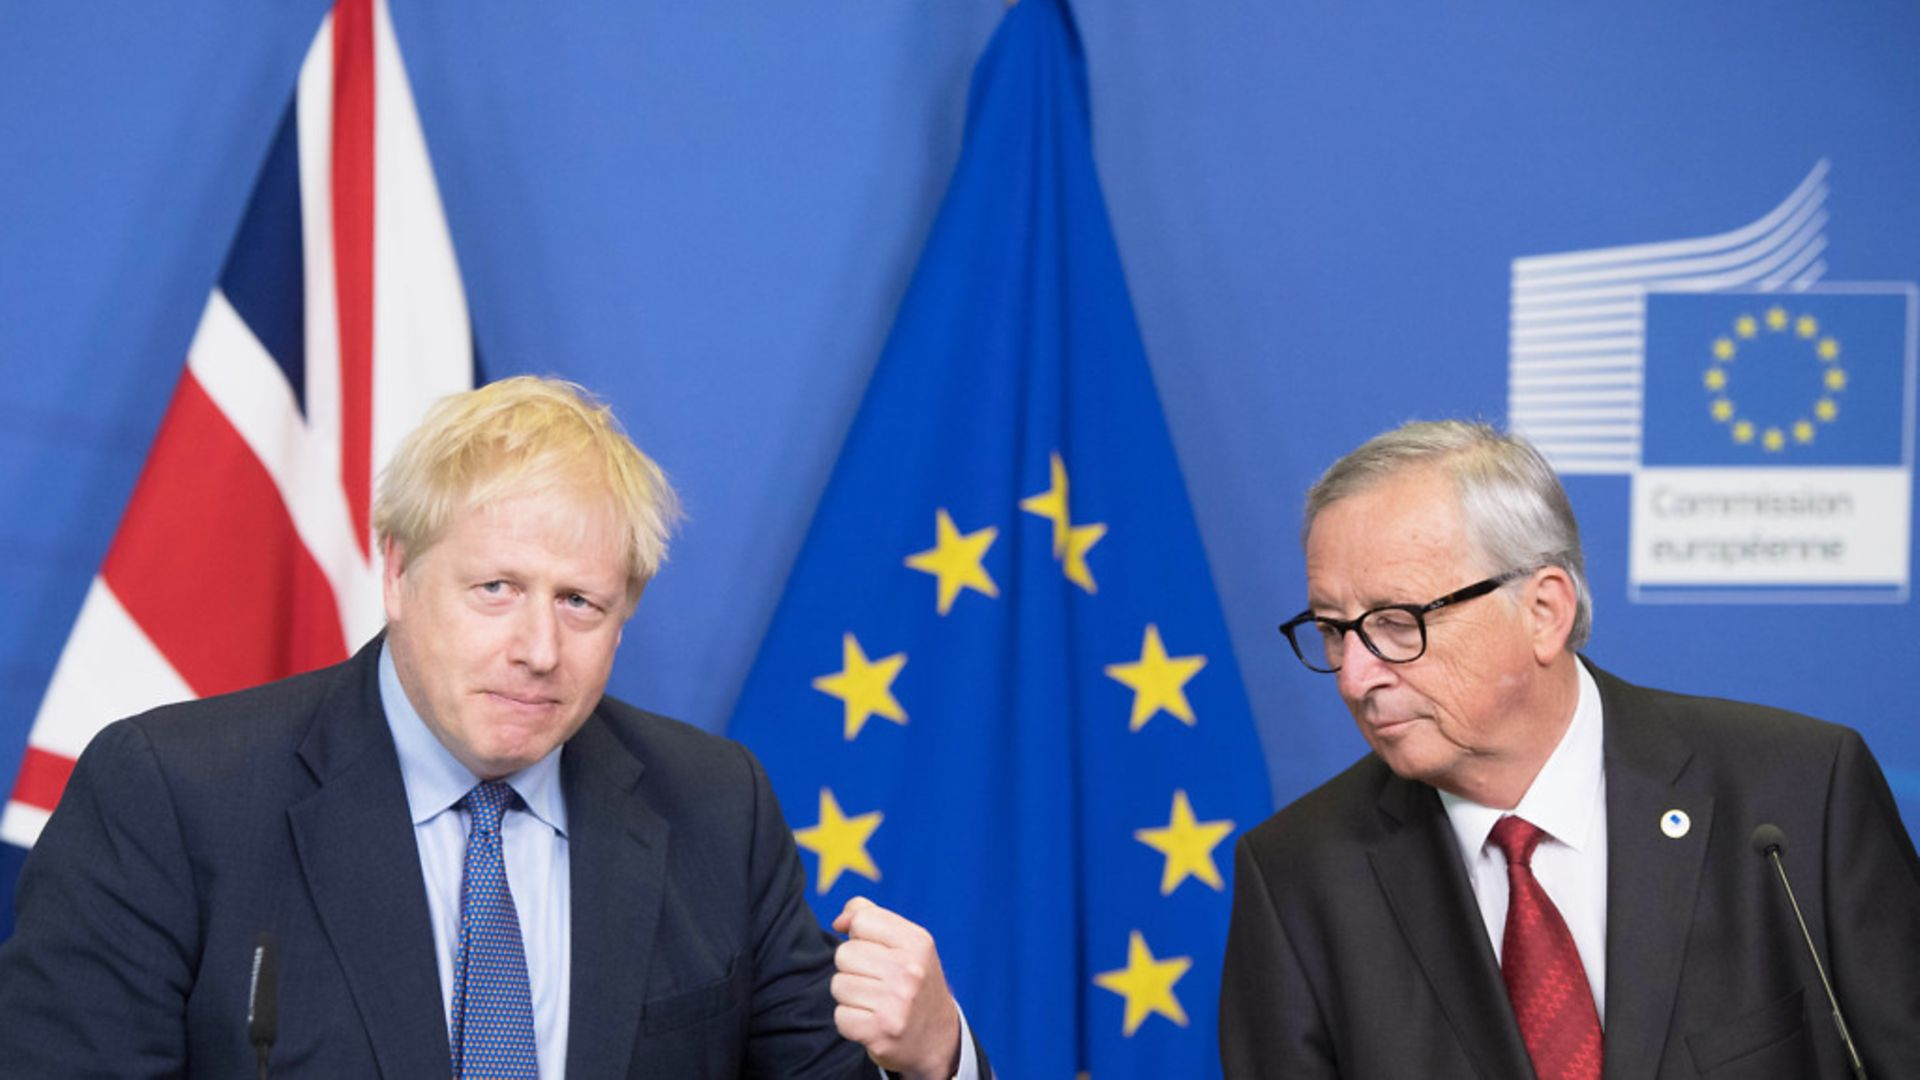 UK Prime Minister Boris Johnson and Jean-Claude Juncker - Credit: PA Wire/PA Images